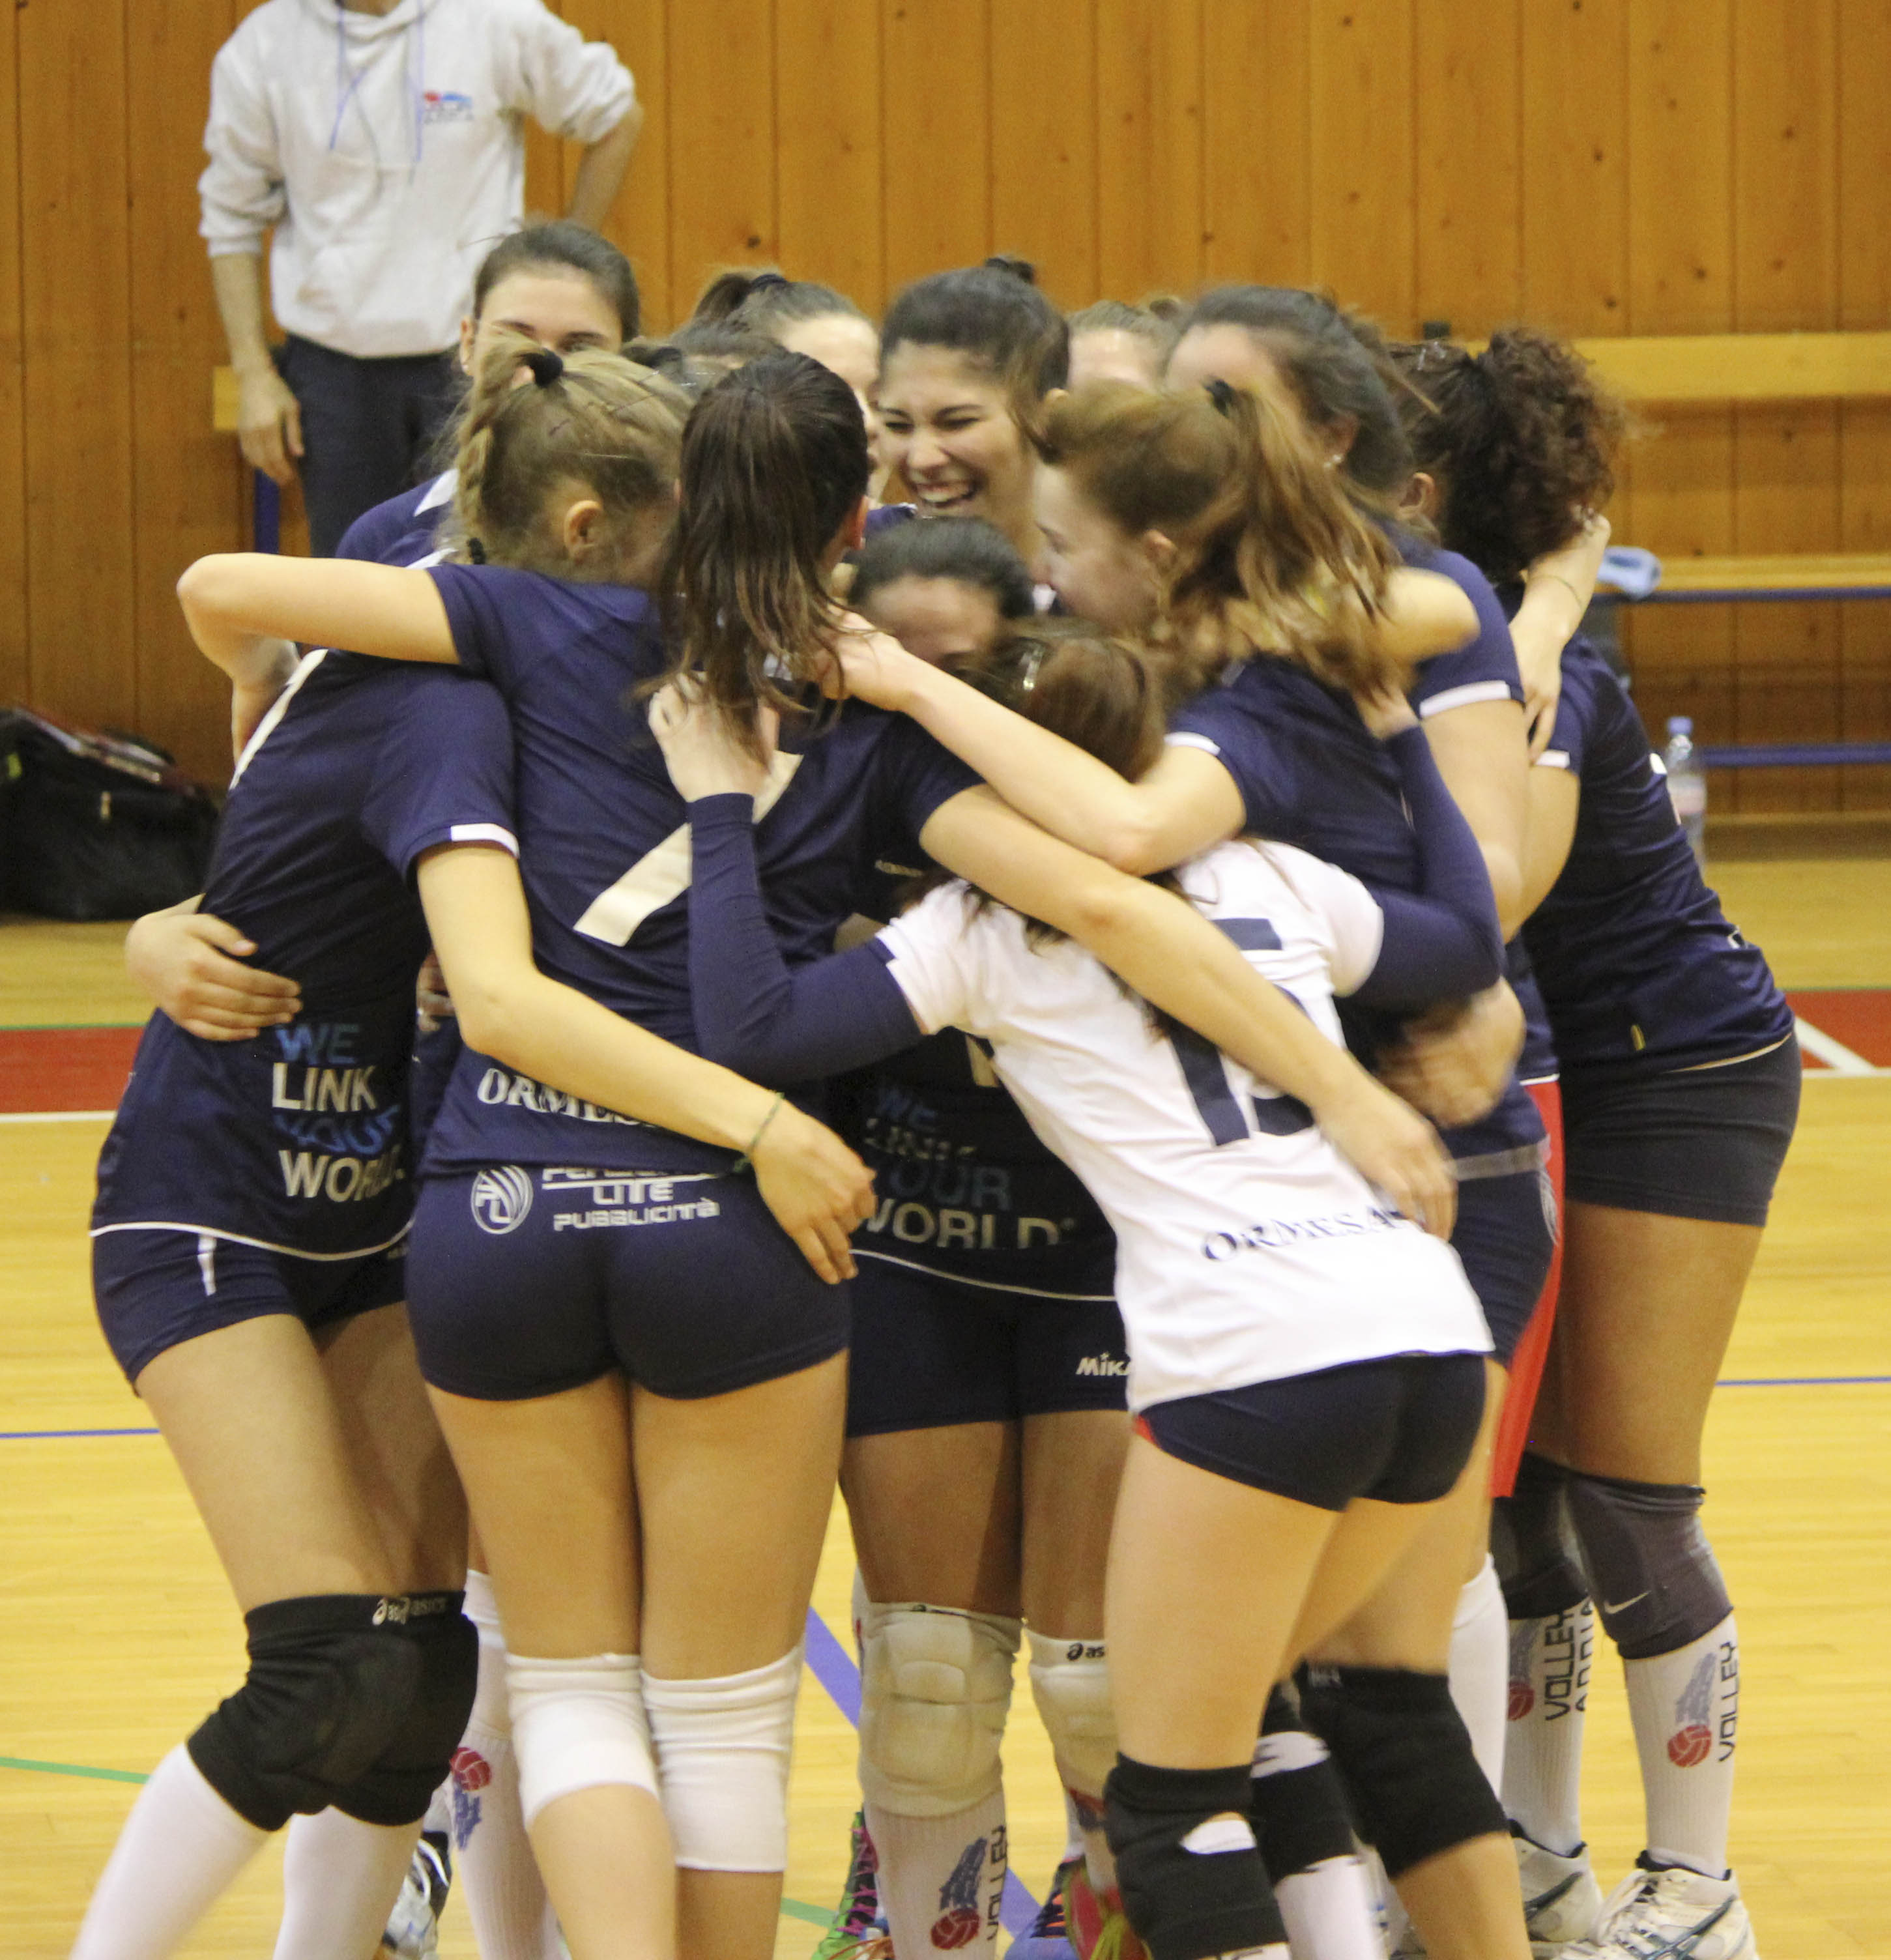 2016-04-30 SerieD Feltre-Volley Annia 047